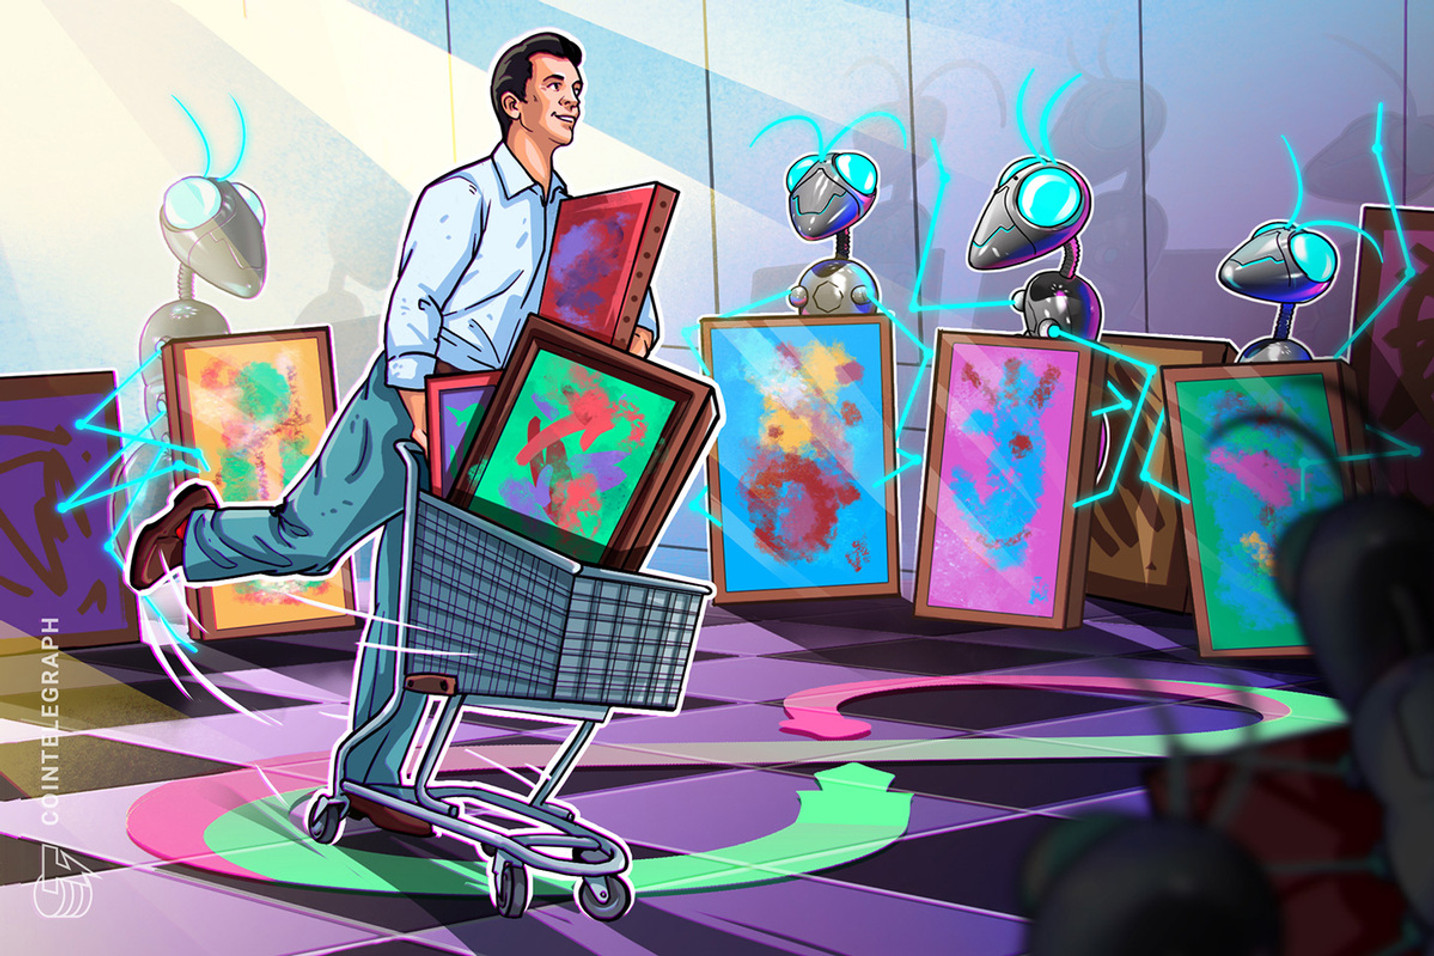 NFT art marketplace extends range with sports and staking partnerships